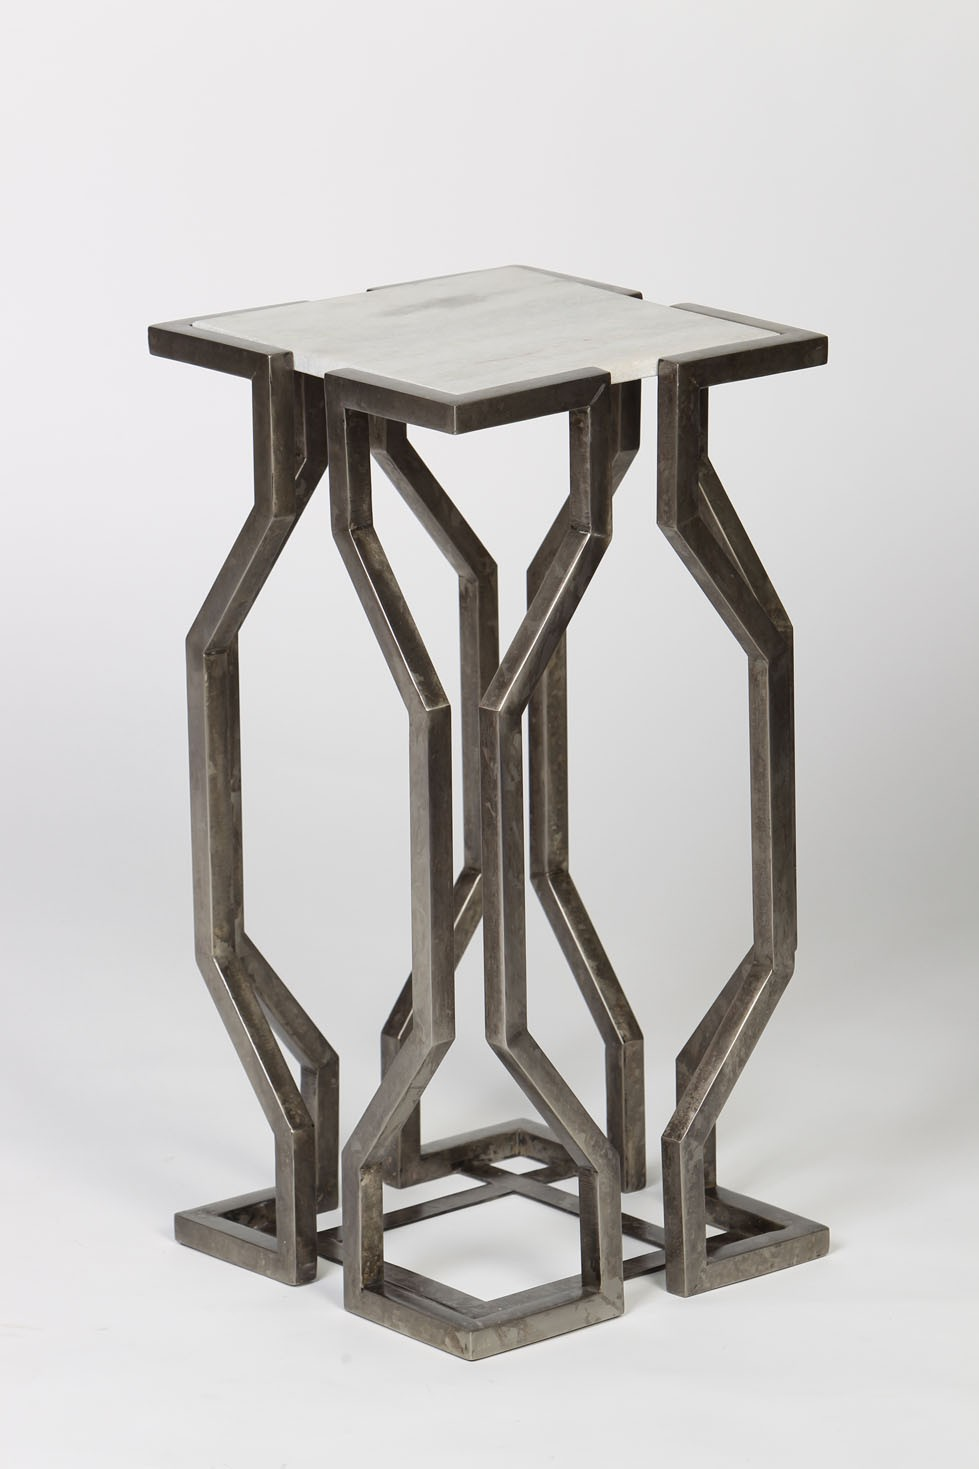 contemporary accent tables geometric home decor inspirations target high table and chairs multi colored coffee toronto top decorations wicker furniture set clearance small mosaic